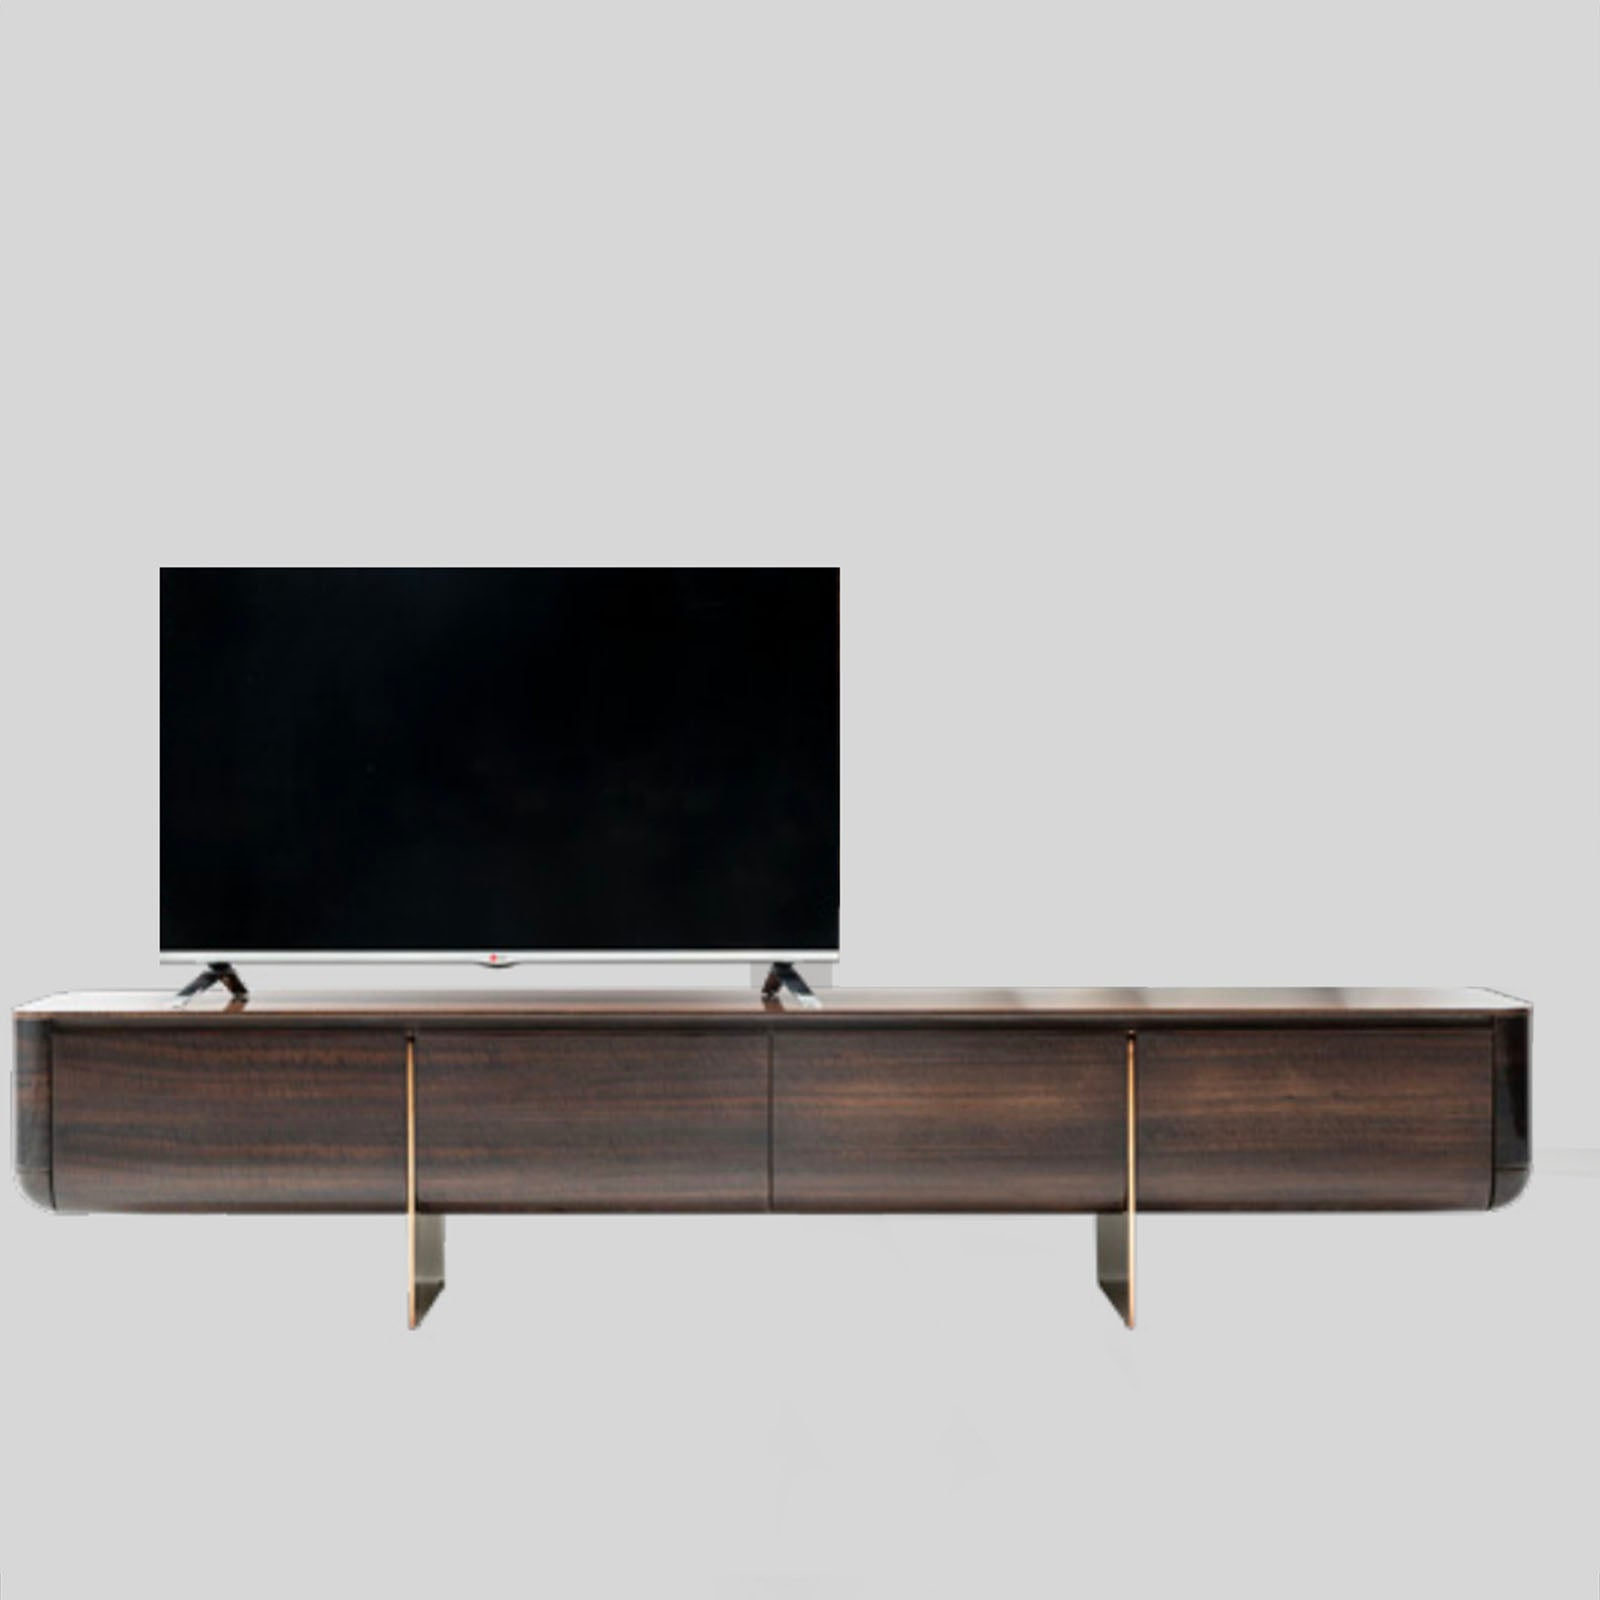 Pre-Order 30 days delivery ARPAGE  TV unit  ARPAGE-TV